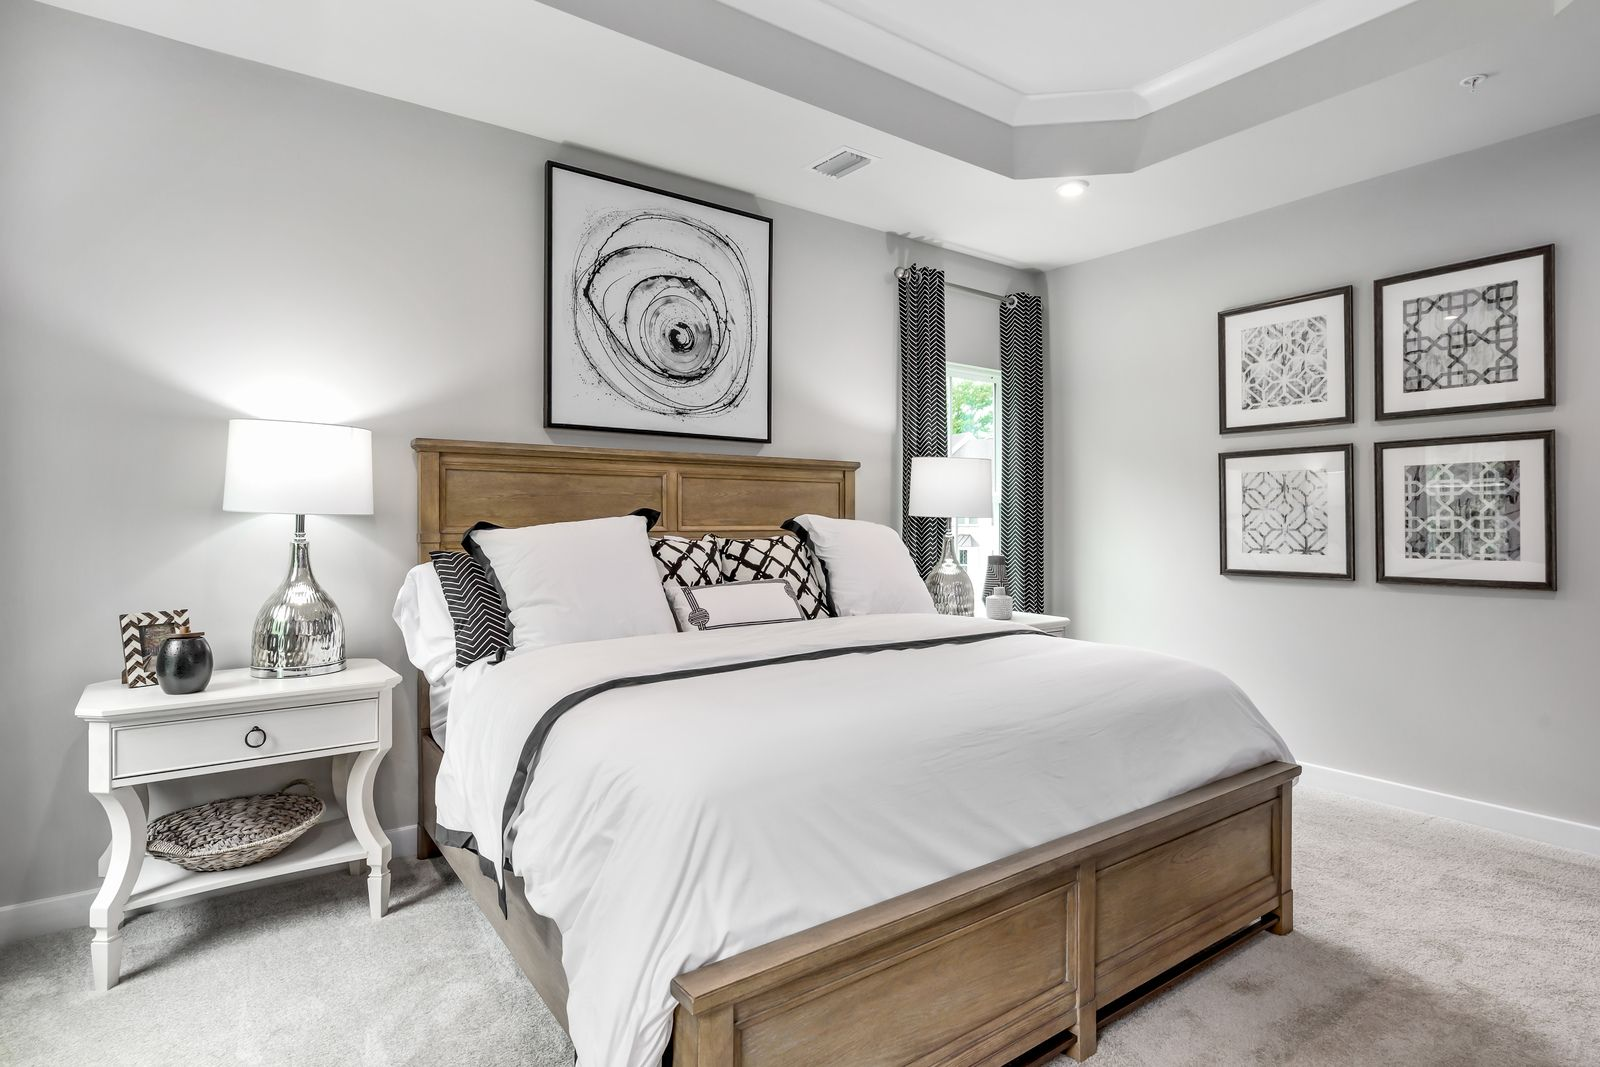 Bedroom featured in the Wexford By Ryan Homes in Baltimore, MD